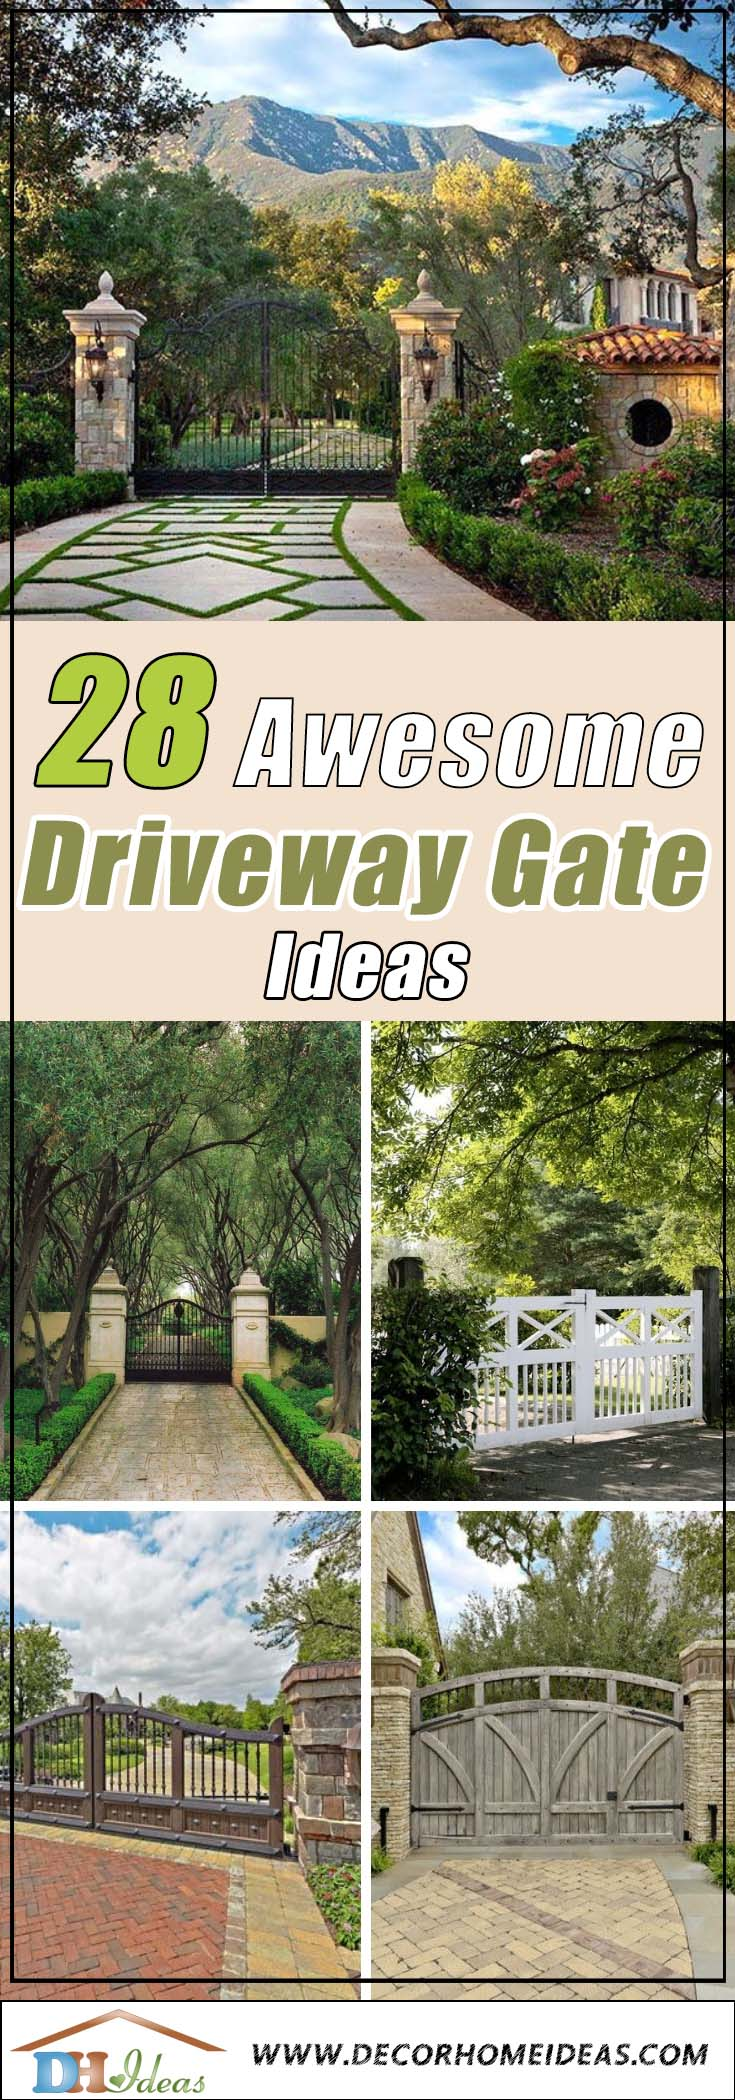 28 Awesome Driveway Gate Ideas To Impress Your Guests